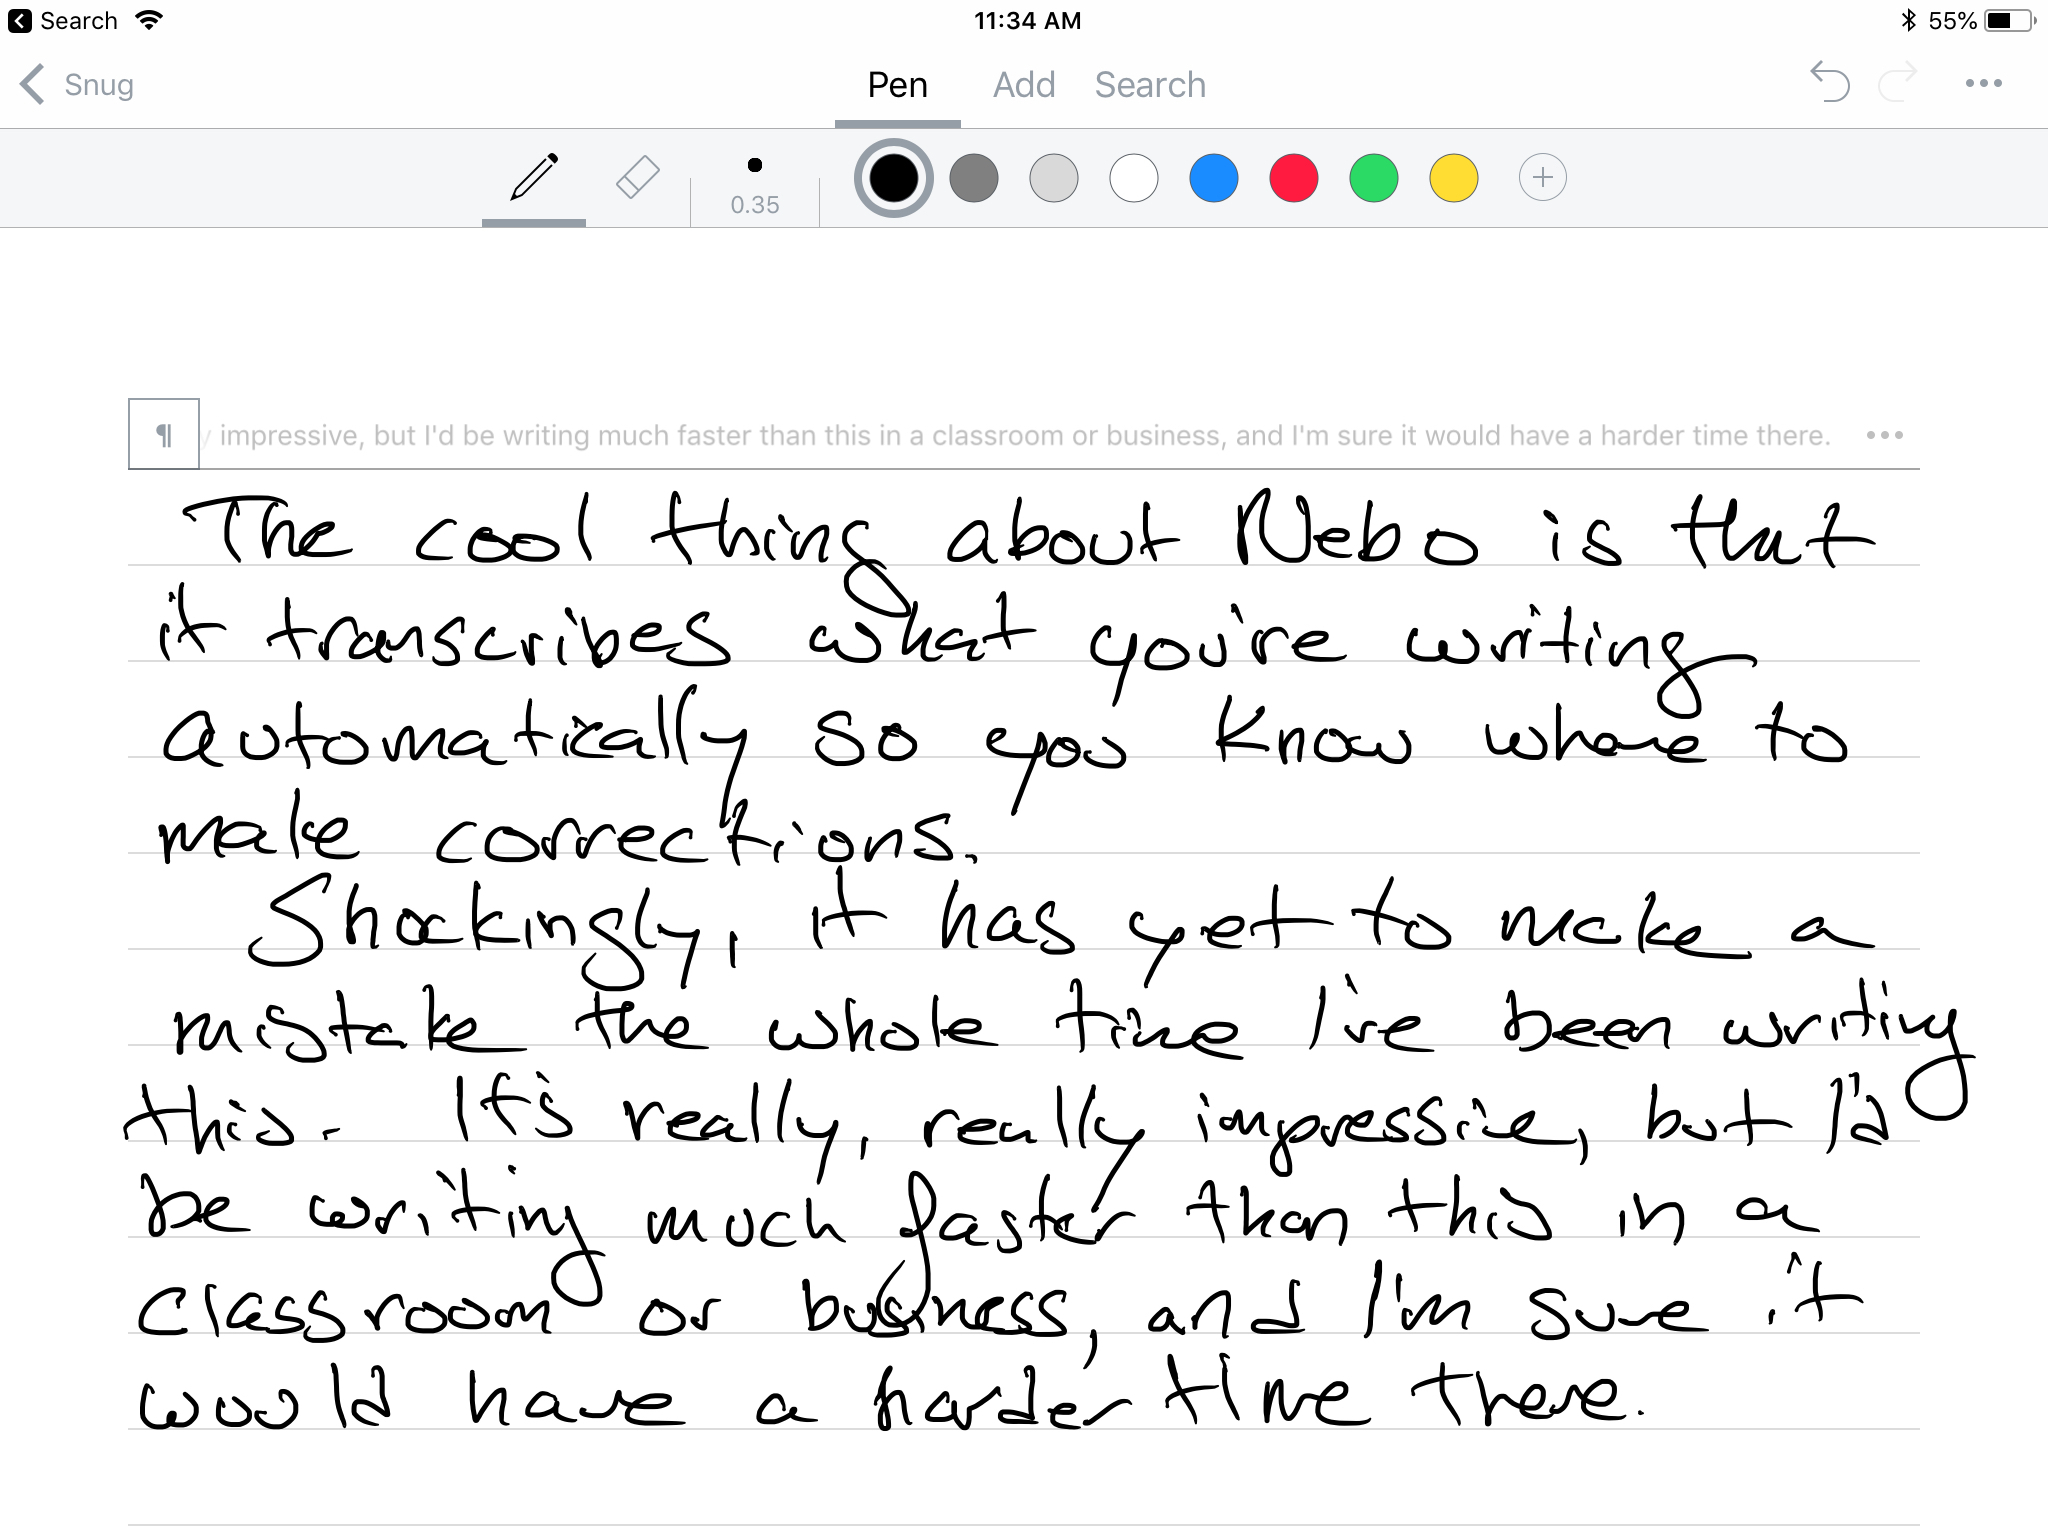 How to Take Handwritten Notes on iPad using the Apple Pencil